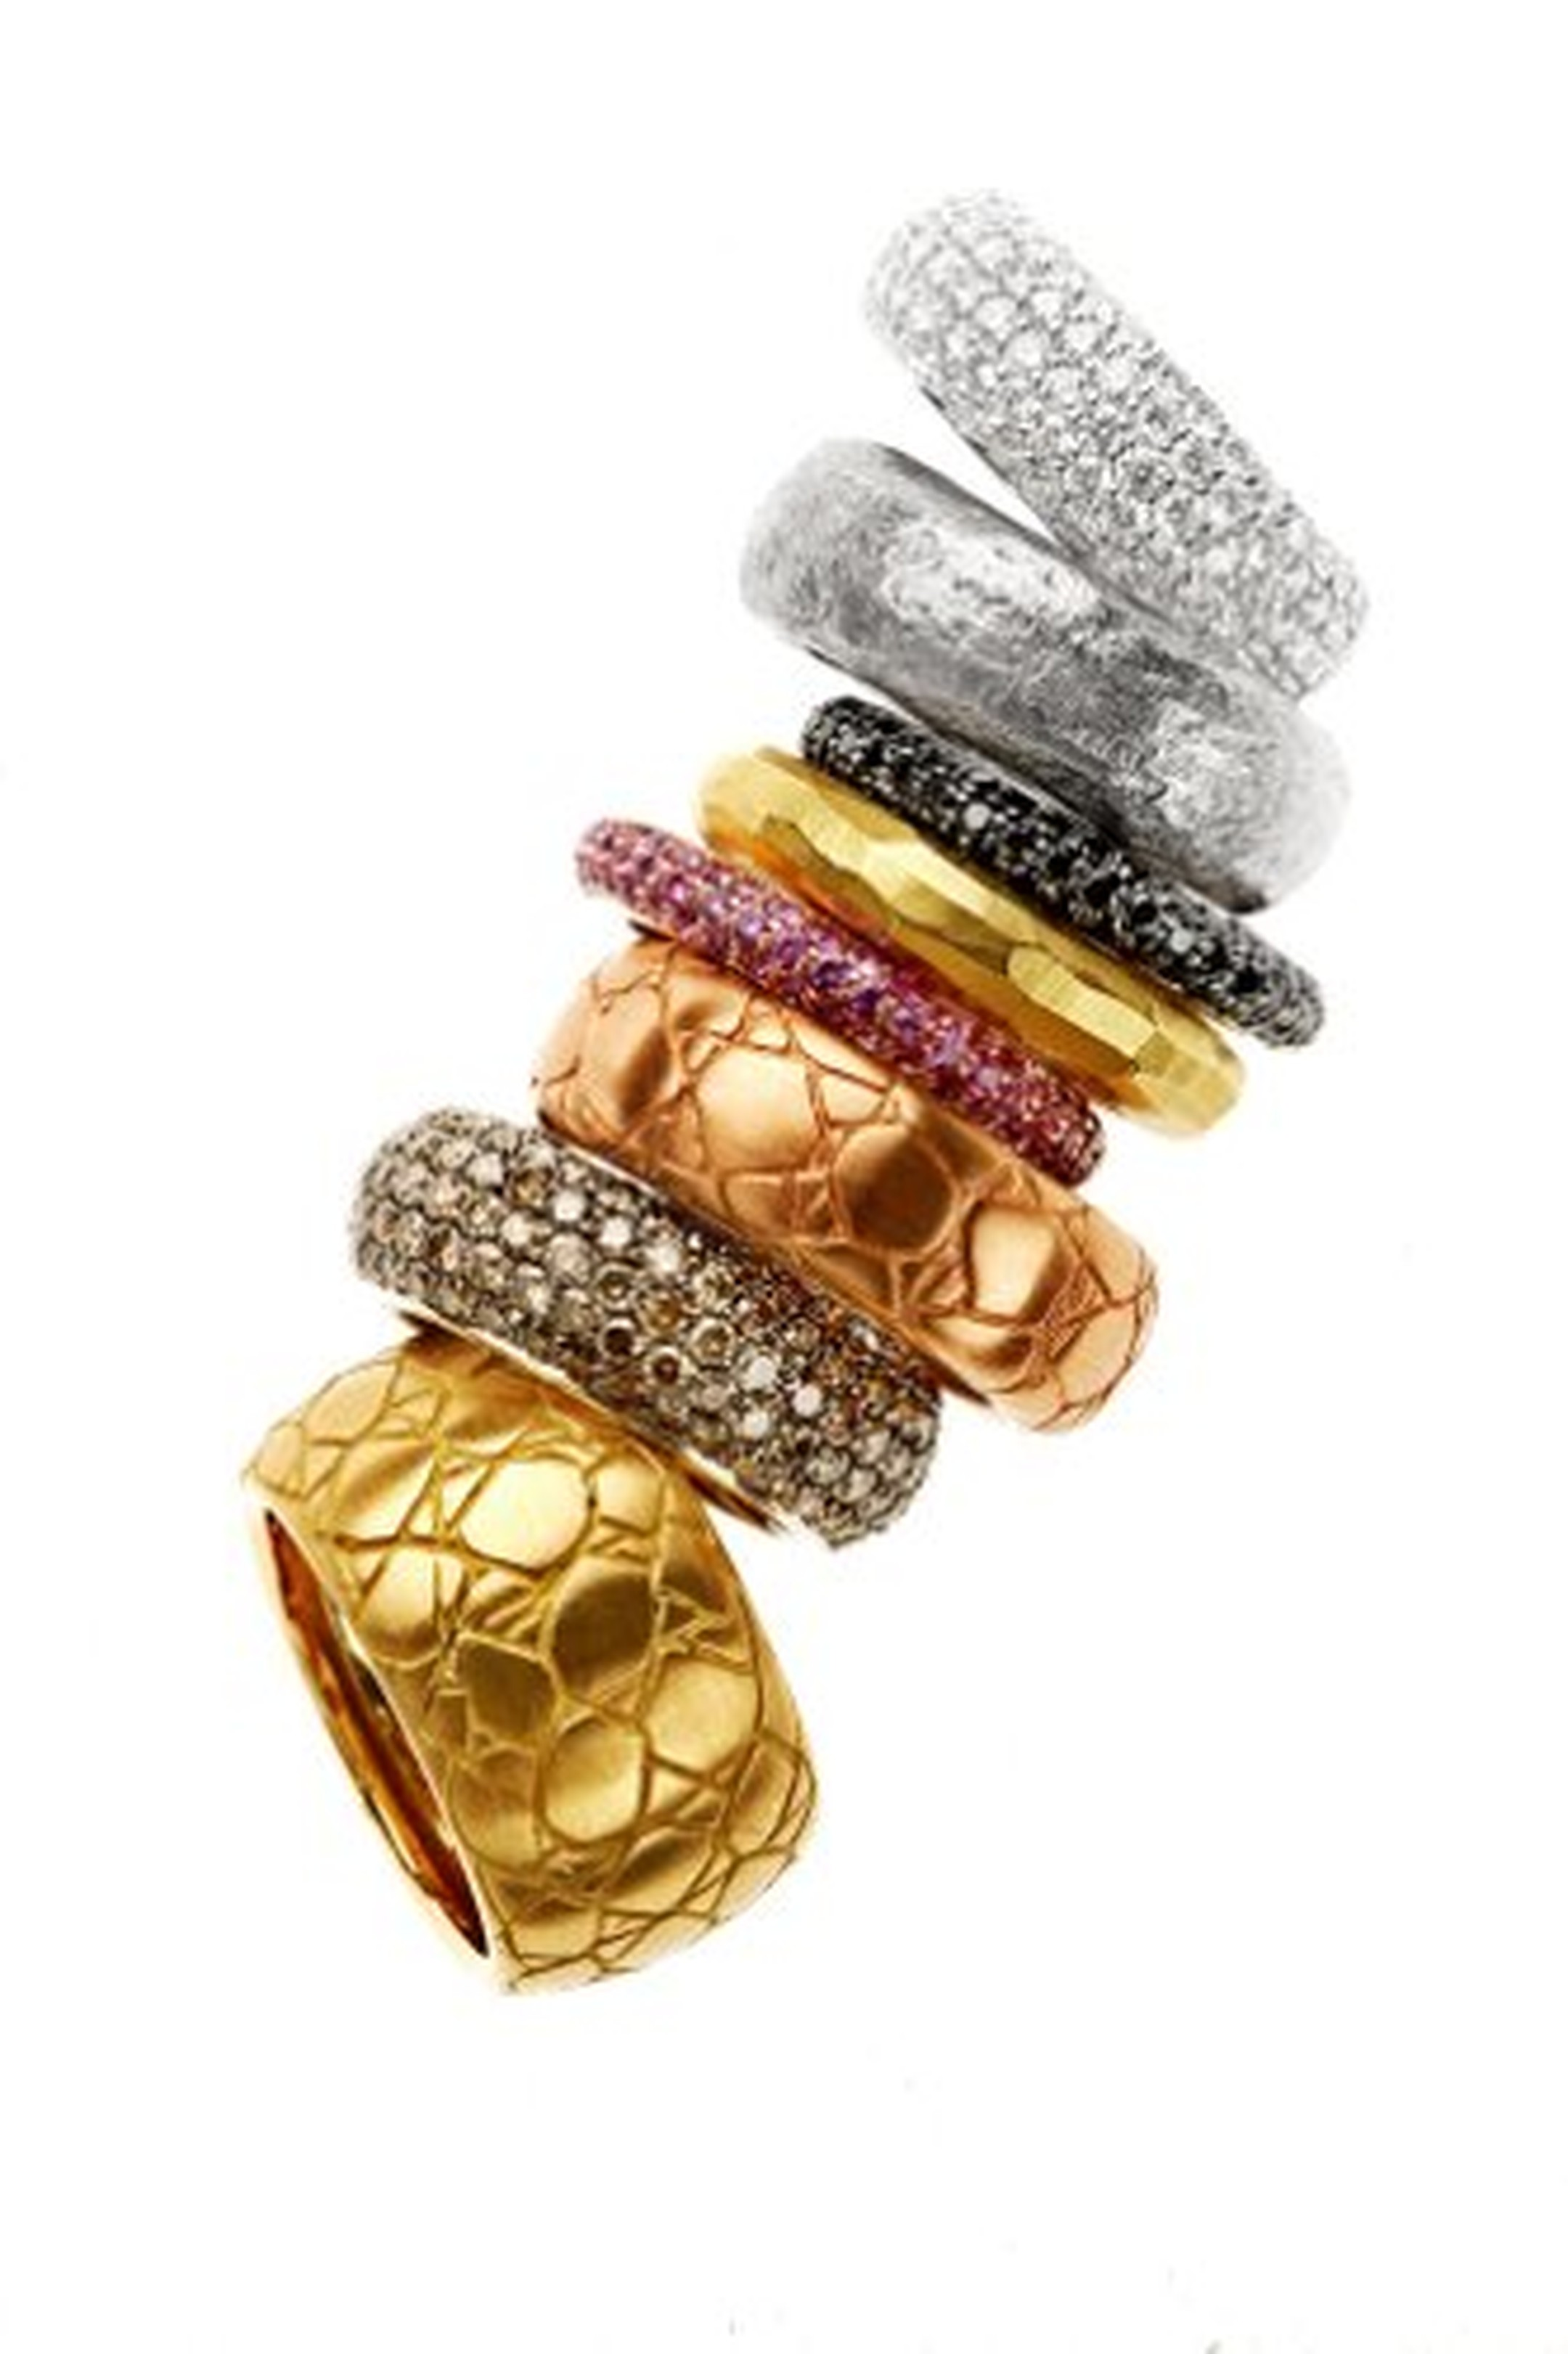 Elena C rings from the Texturas collection in pink, white and yellow gold with crocodile, bamboo and hemp textures as well as brown diamond and coloured sapphires. Prices start at 780€.